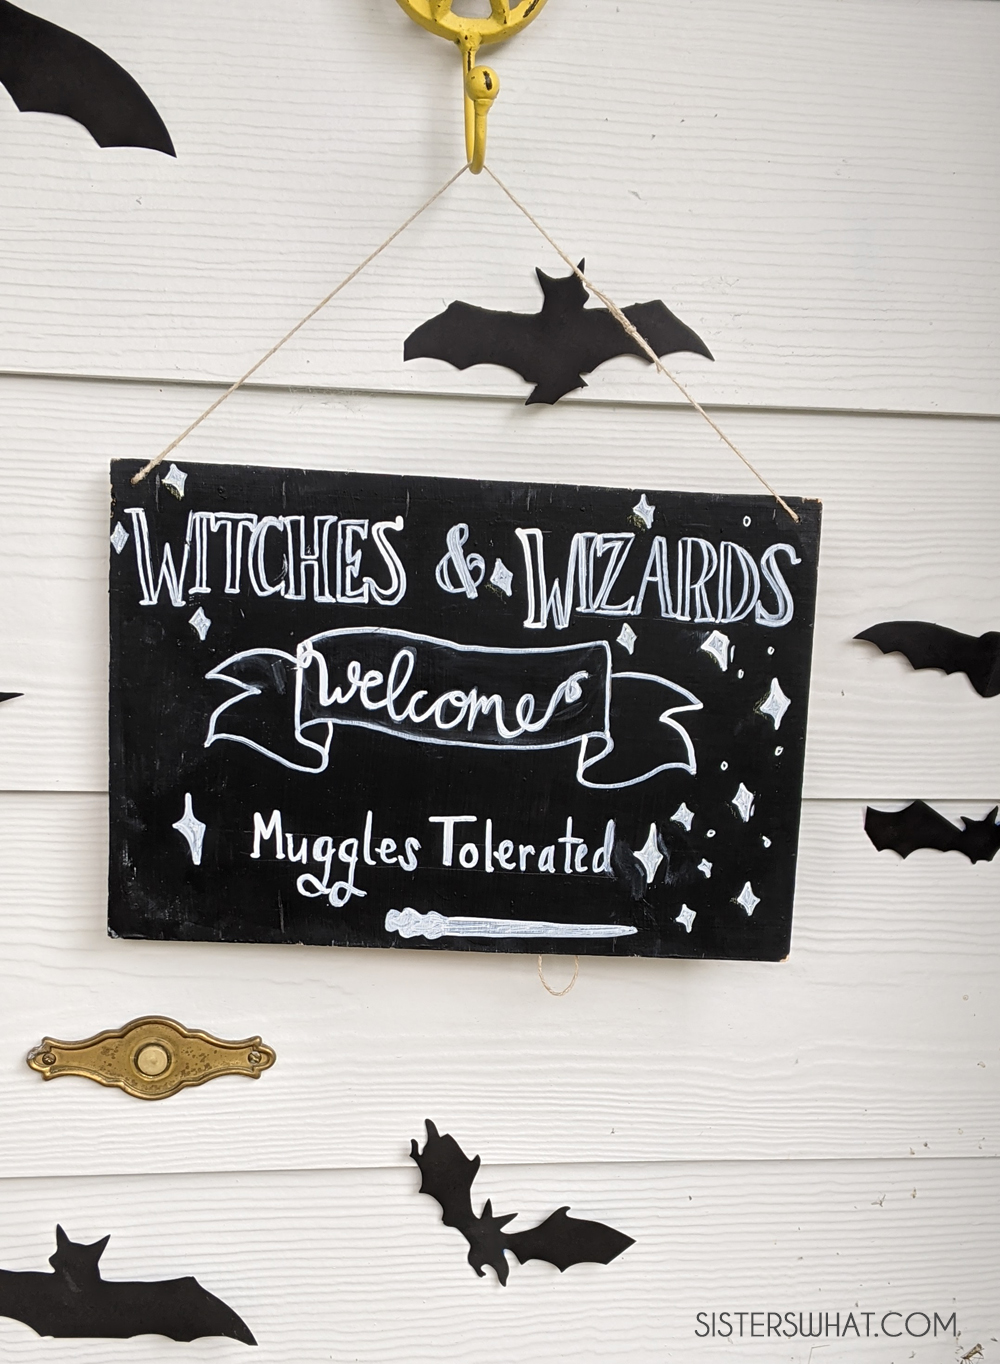 witches and wizards welcome muggle tolerated sign